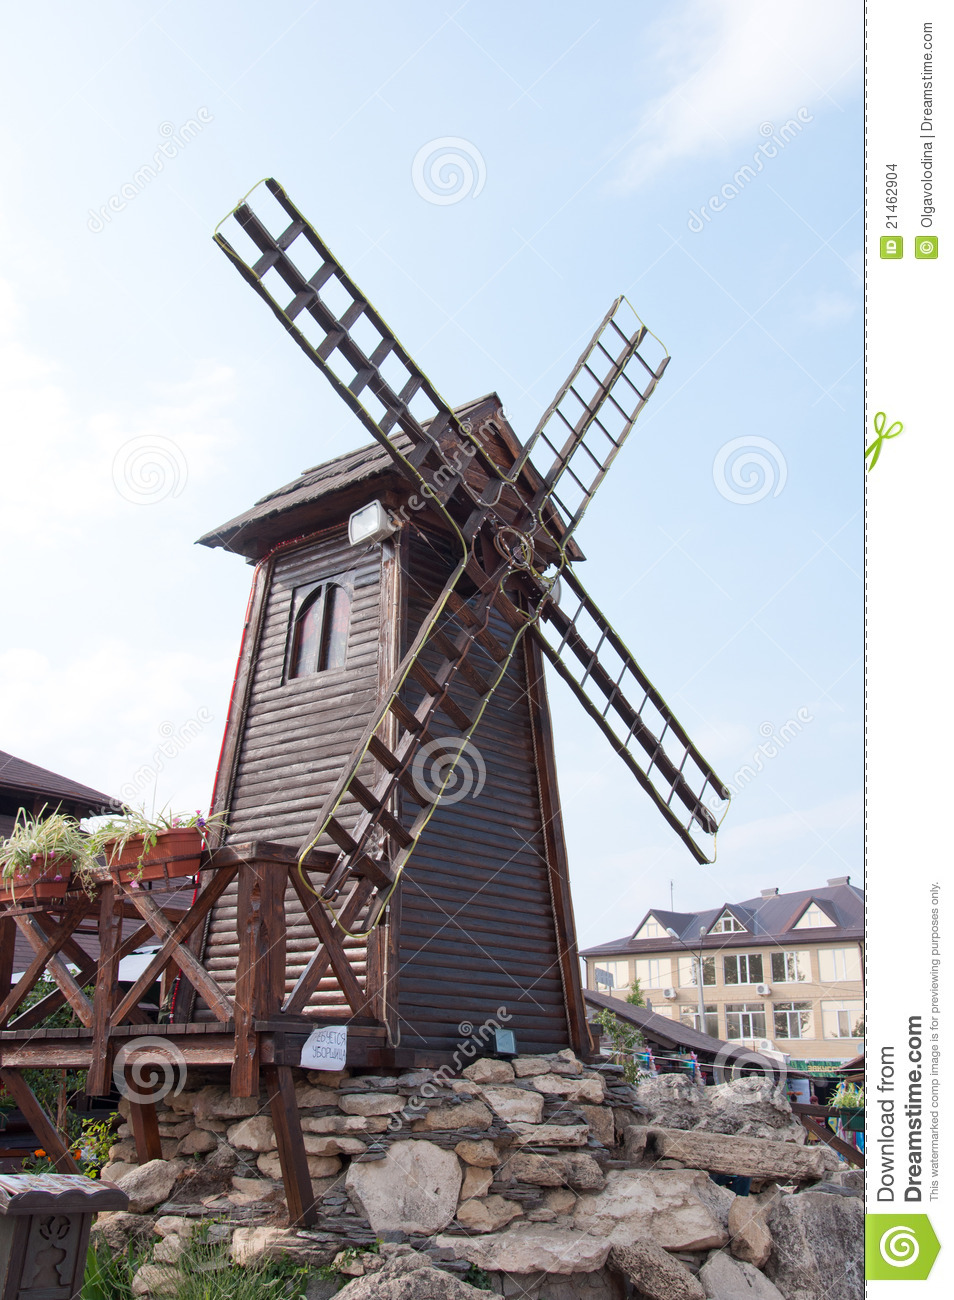 More similar stock images of ` Decorative windmill - wood sculpture `